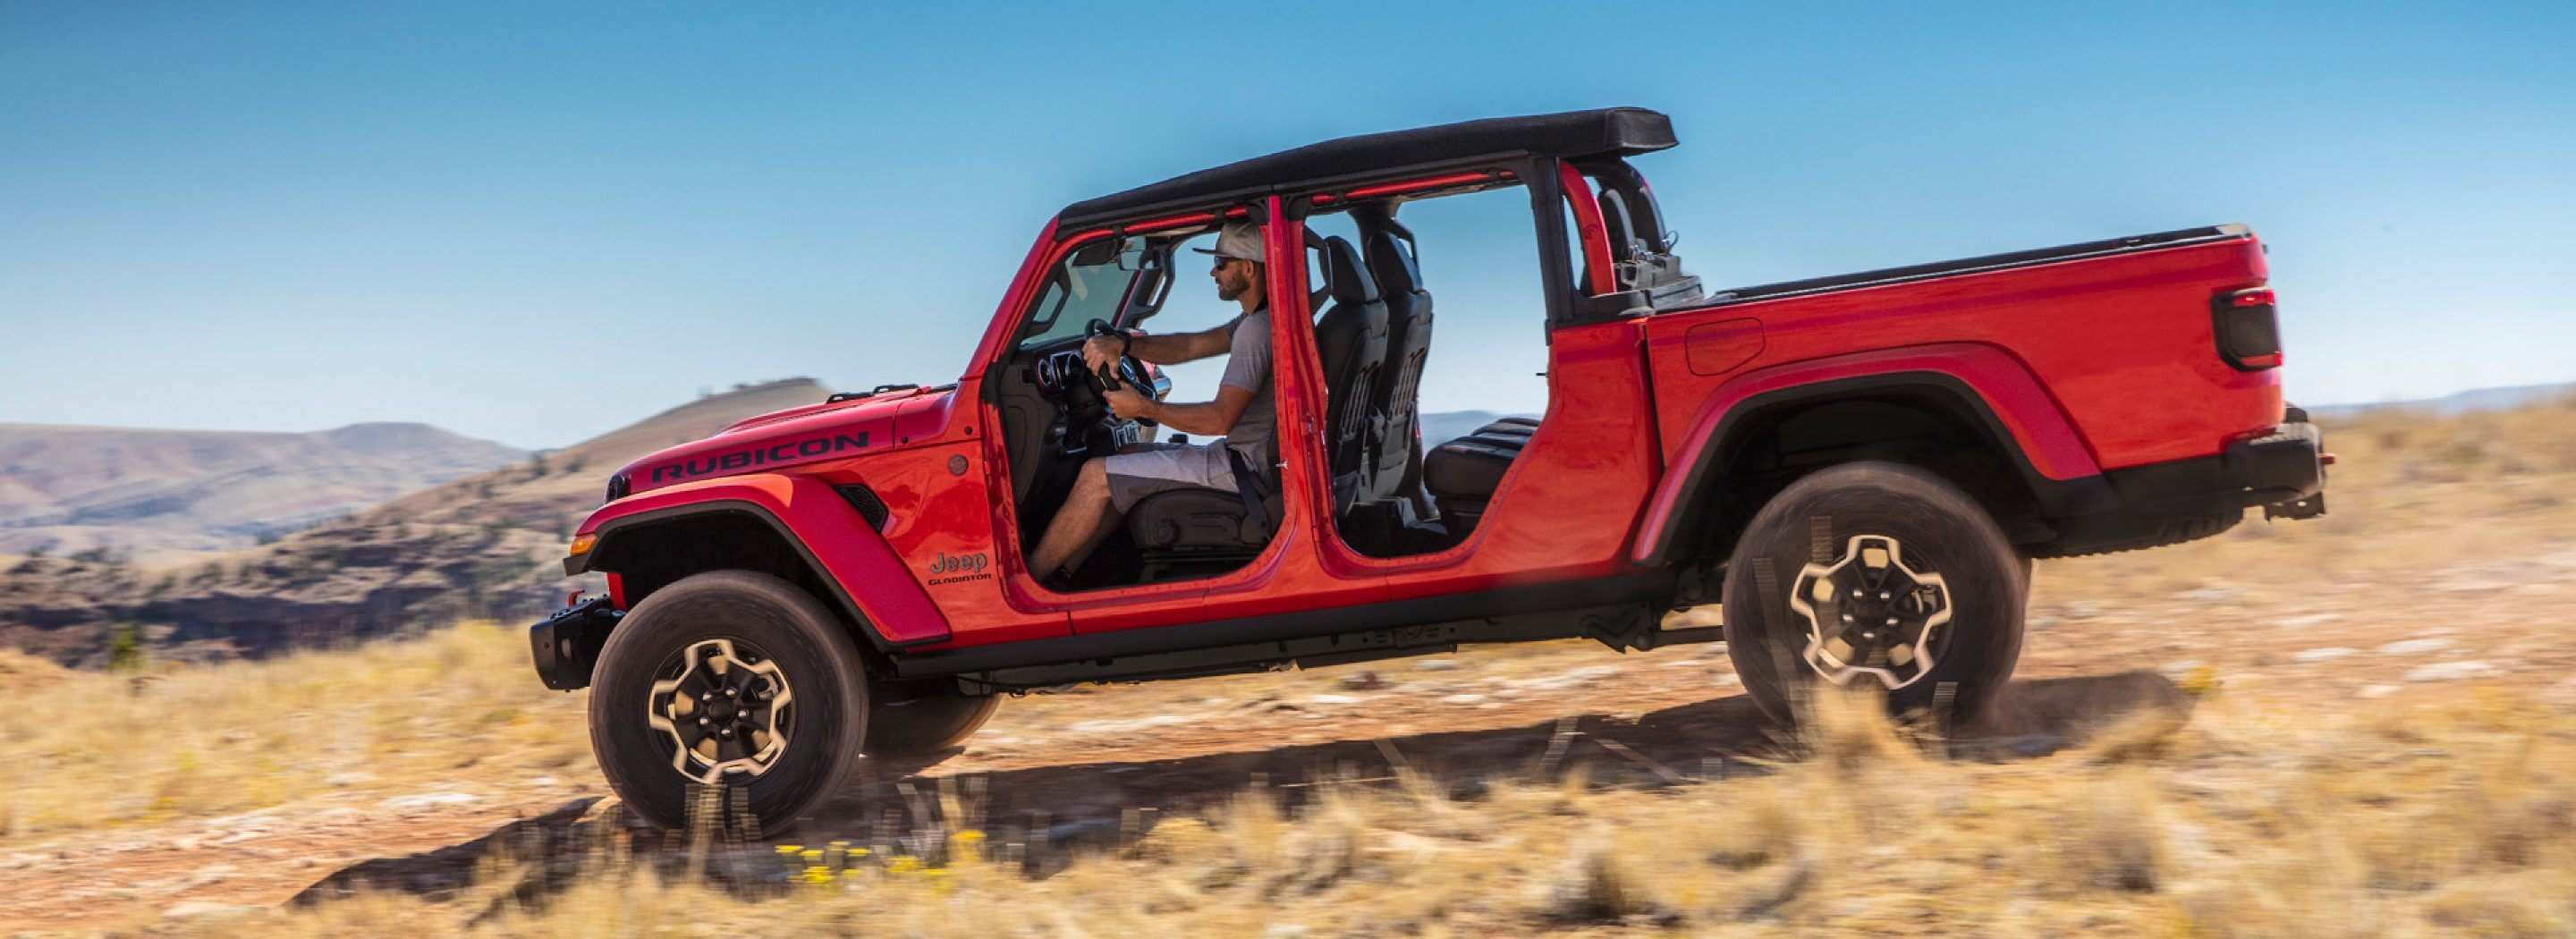 53 A 2020 Jeep Gladiator Availability Performance and New Engine